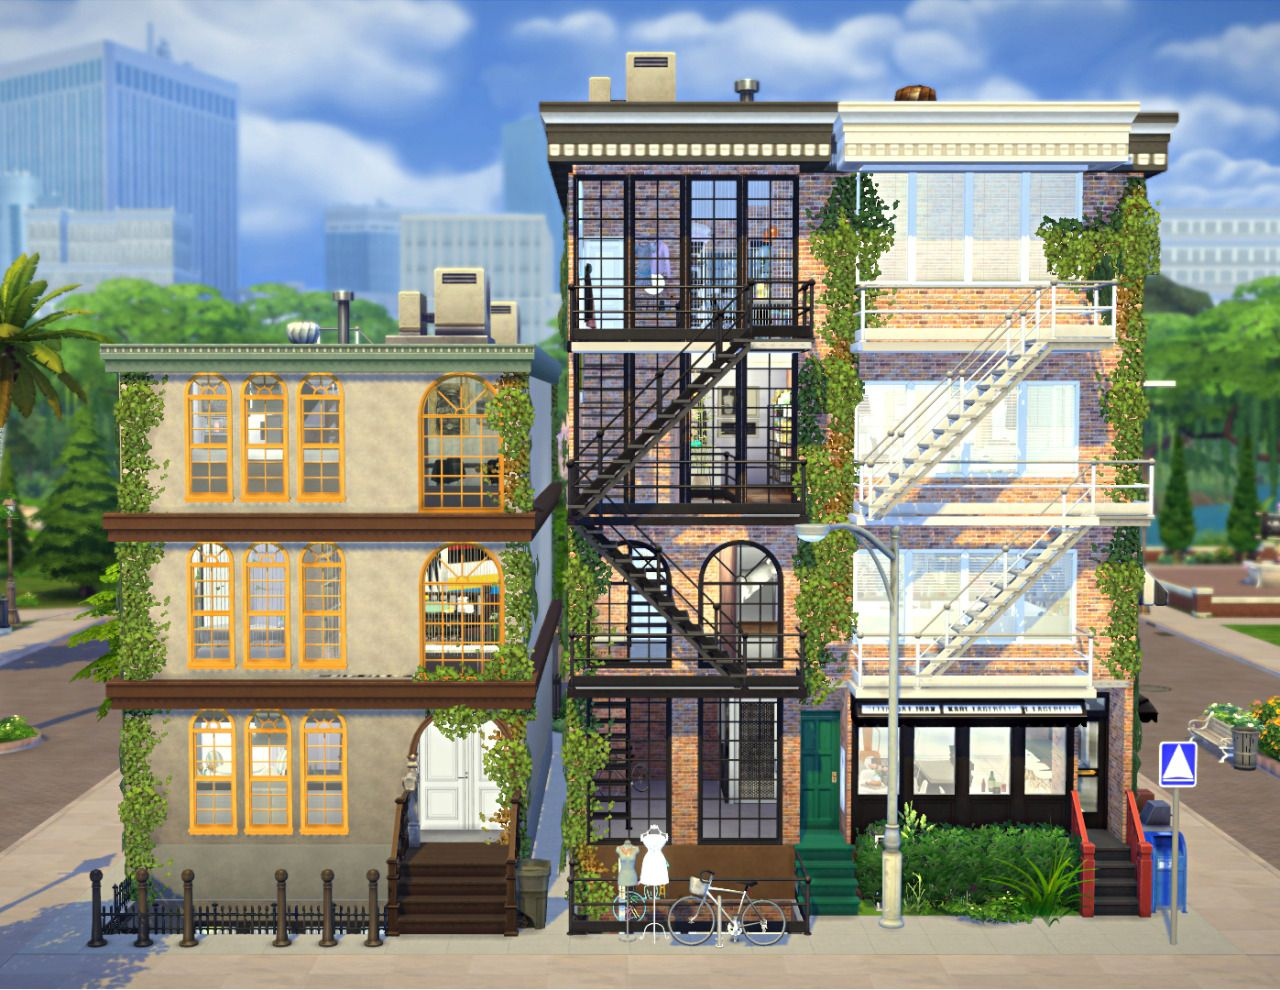 Apartment Build Get To Work Stairs Doors Windows Walls Wall Greenery Bicycles Outdoor Plants Grass Awnings